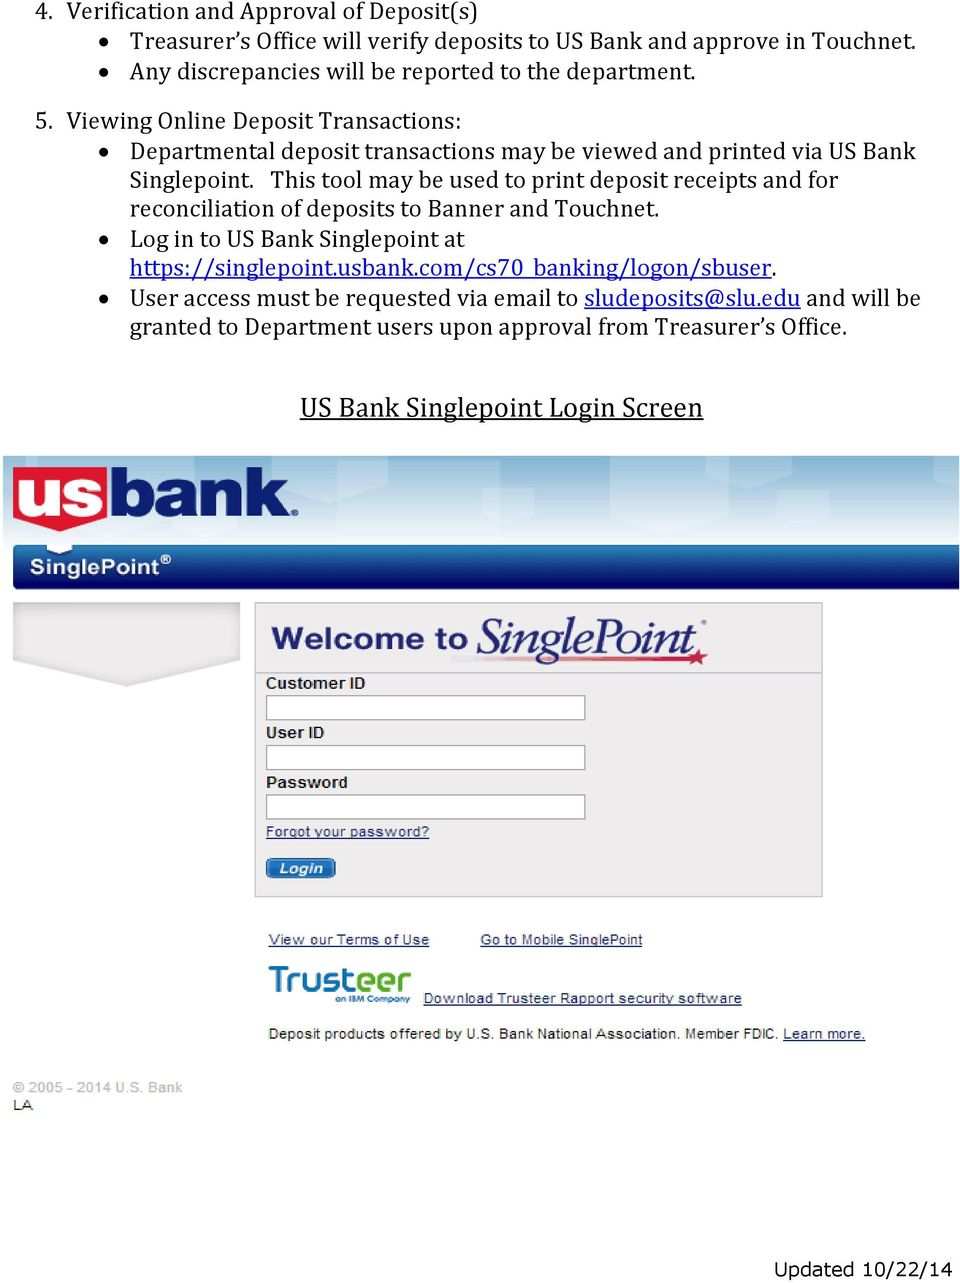 Viewing Online Deposit Transactions: Departmental deposit transactions may be viewed and printed via US Bank Singlepoint.